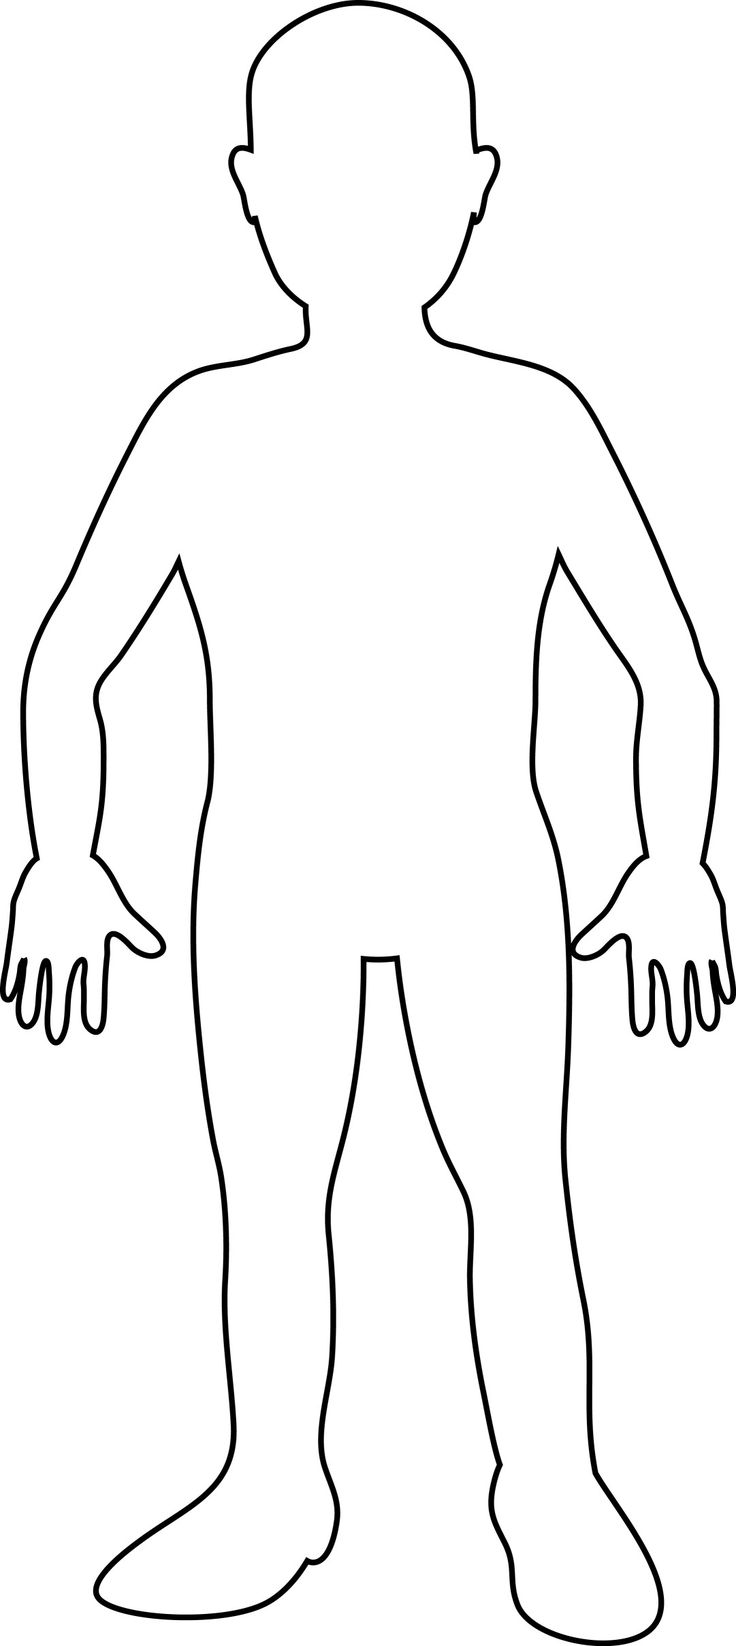 human body, fill in name of bodyparts as they learn.